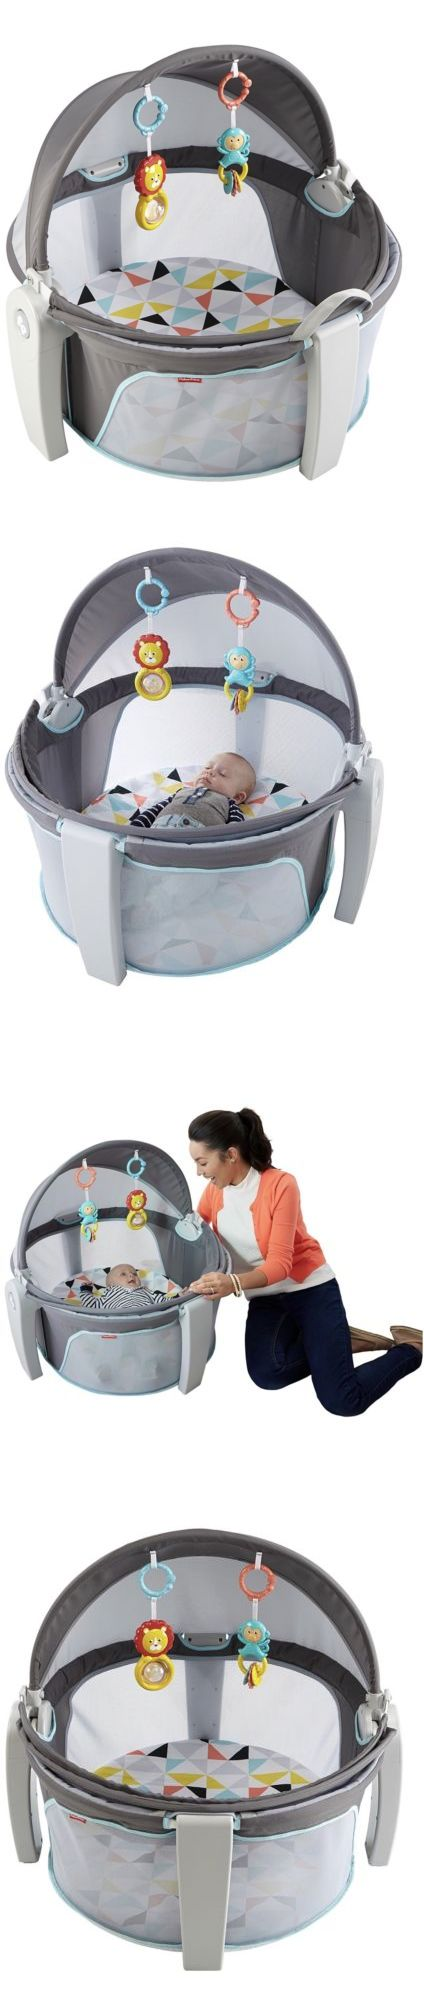 Nursery Furniture 20422: Fisher-Price On-The-Go Baby Dome, White -> BUY IT NOW ONLY: $46.9 on eBay!